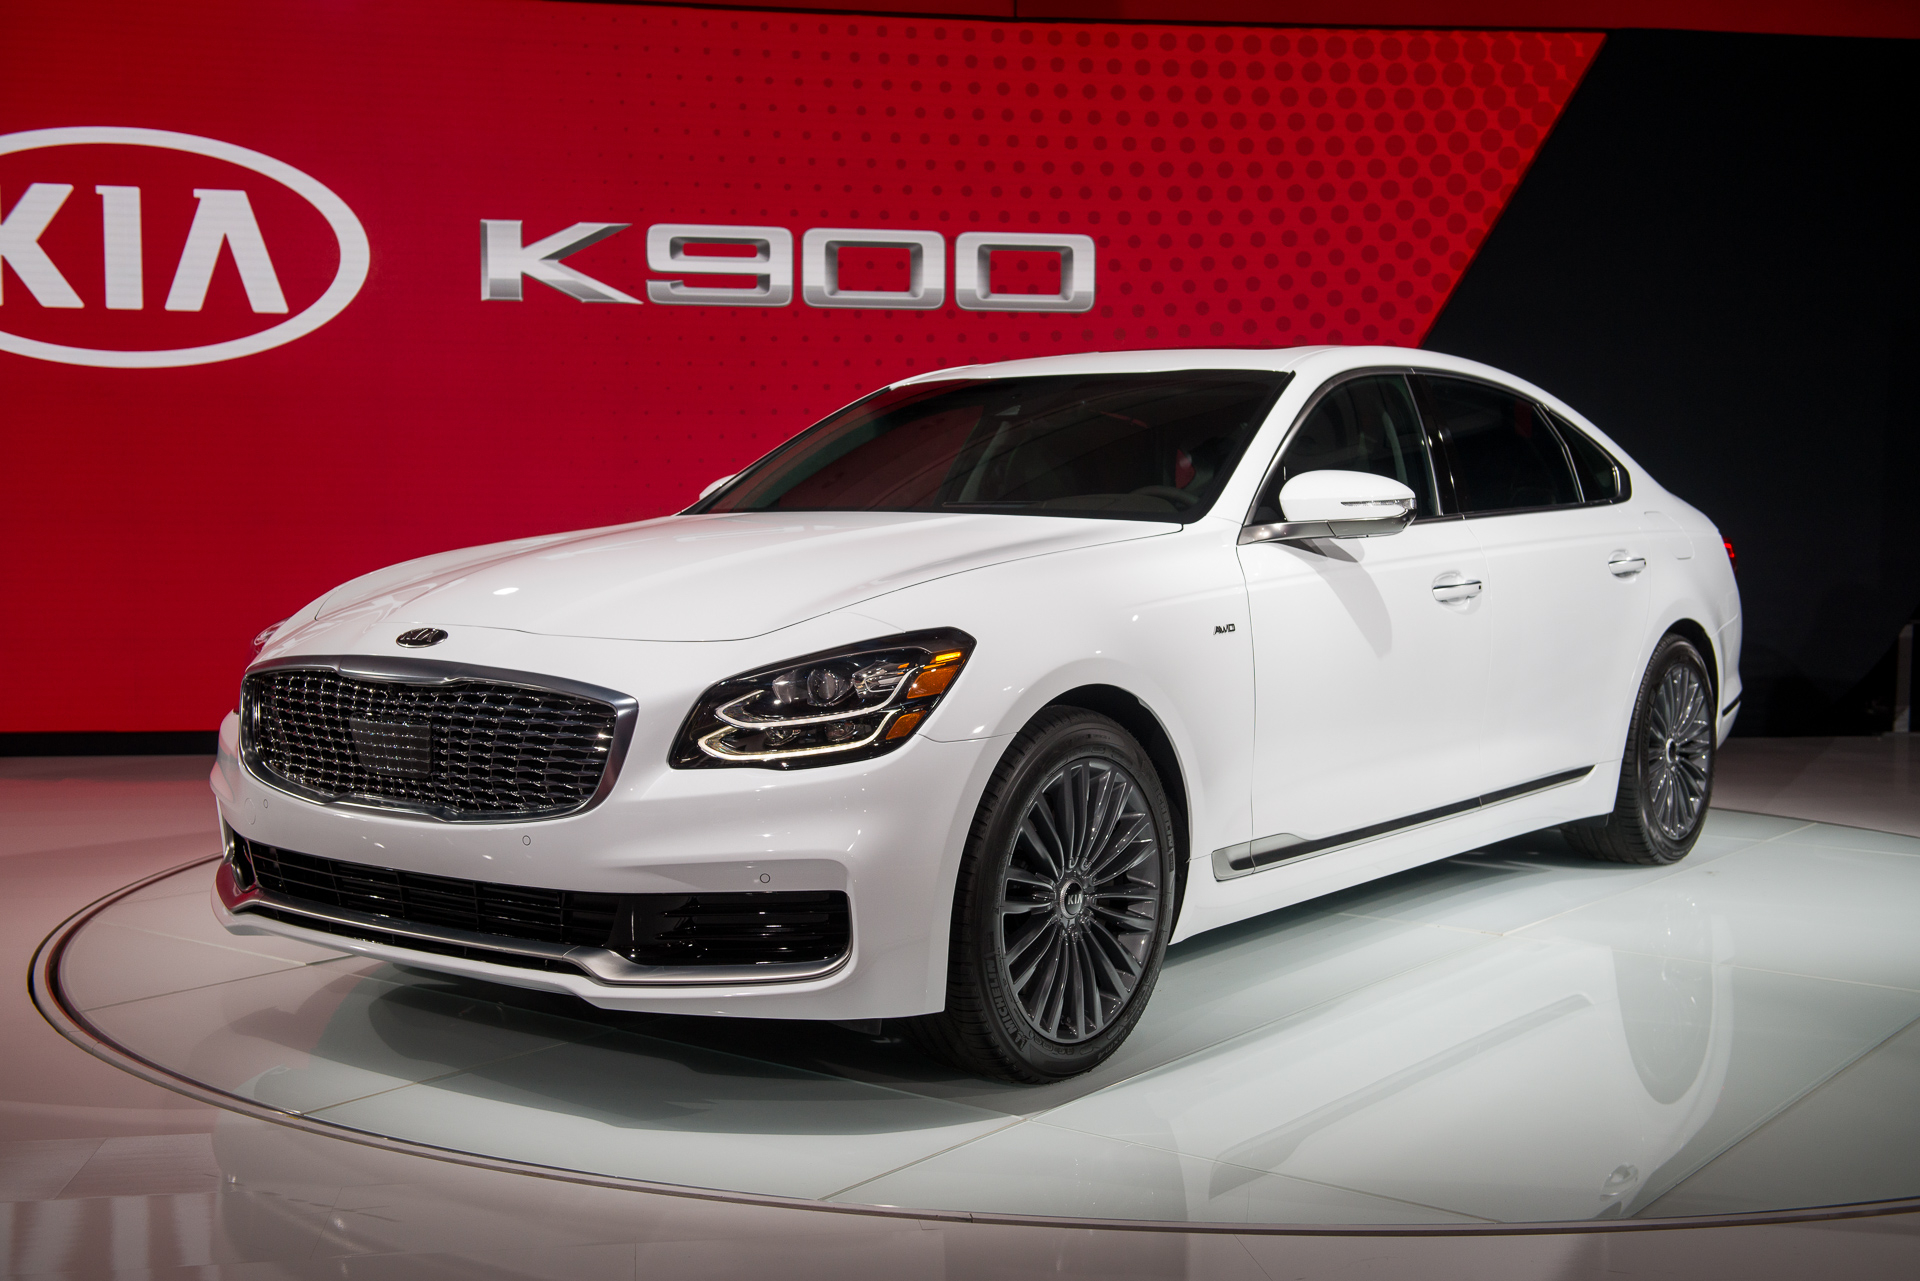 2019 Kia K900 Video First Look: 2018 New York Auto Show - 2022 Kia K900 For Sale, Release Date, Gas Mileage